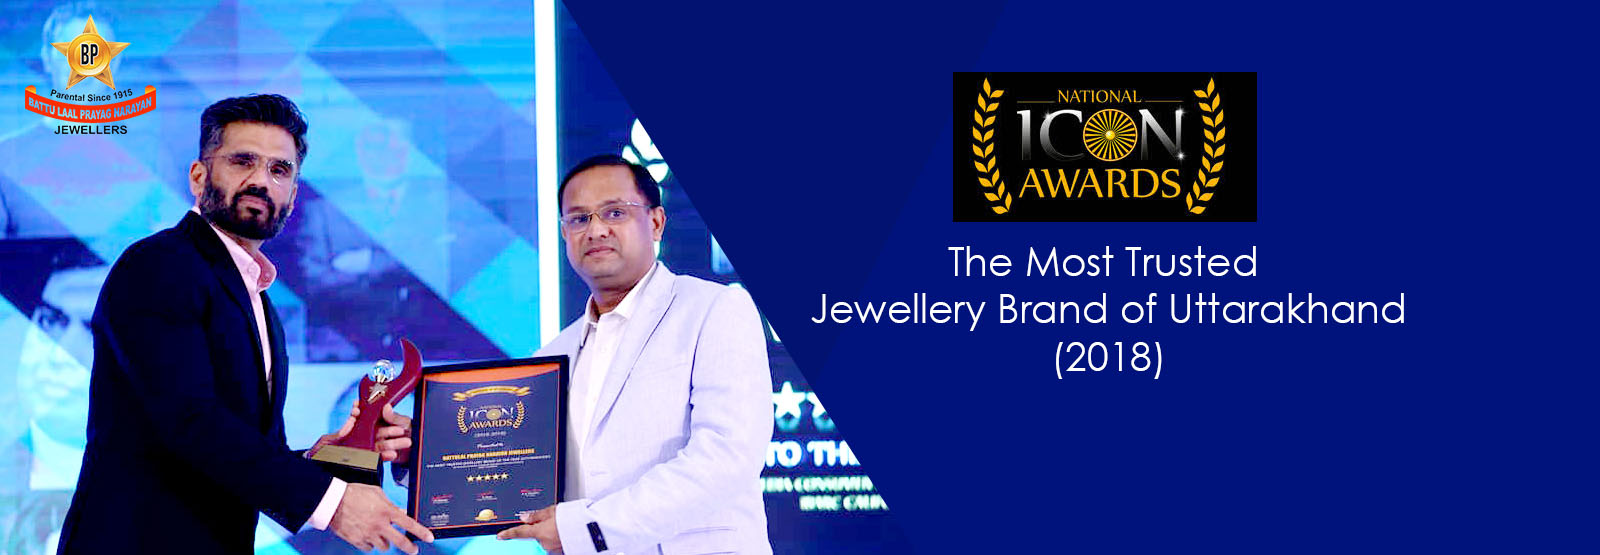 The Most Trusted Jewellery Brand of Uttarakhand 2018